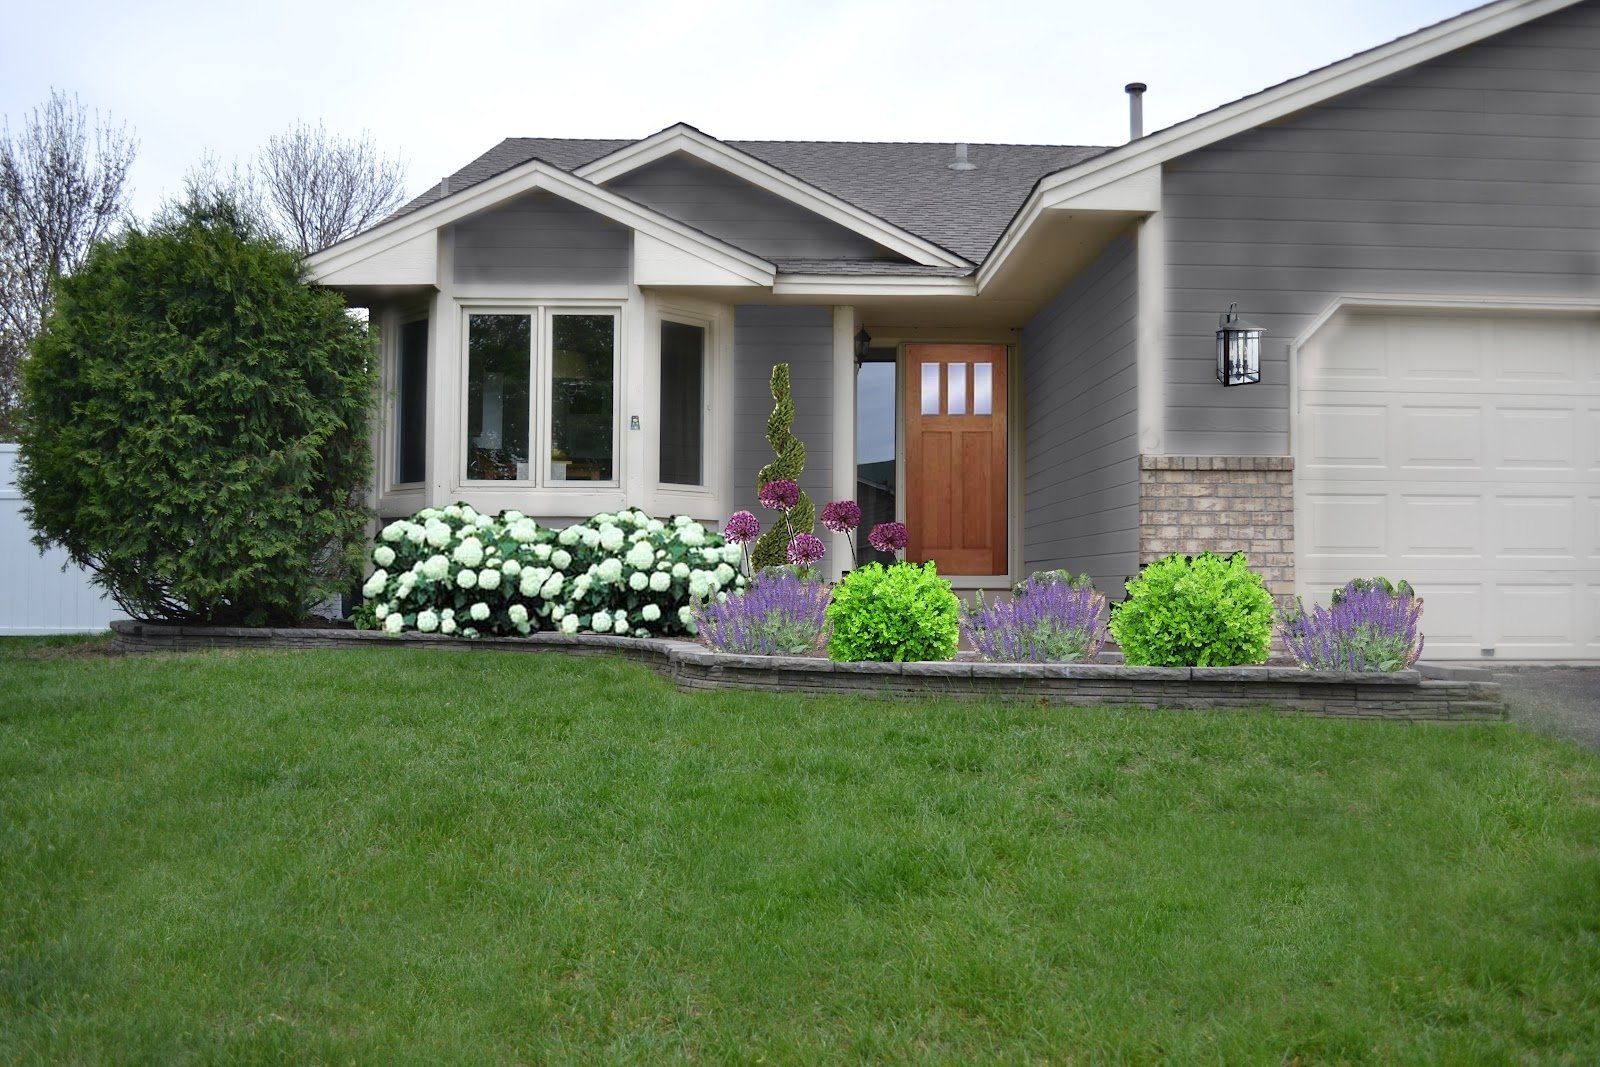 10 Fashionable Landscape Ideas Front Of House front yard incredible simple landscape ideas for front of house